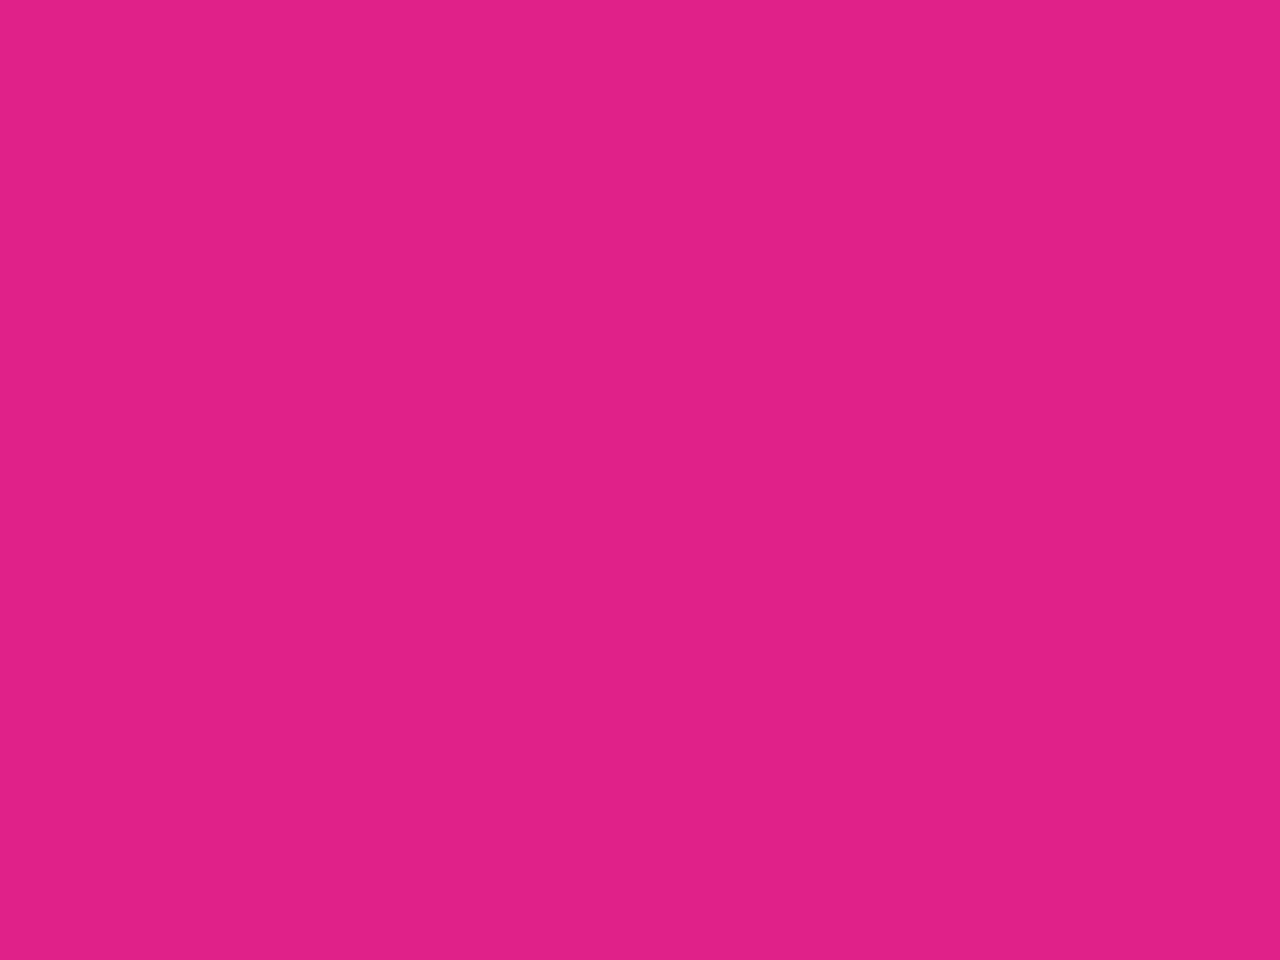 1280x960 Barbie Pink Solid Color Background